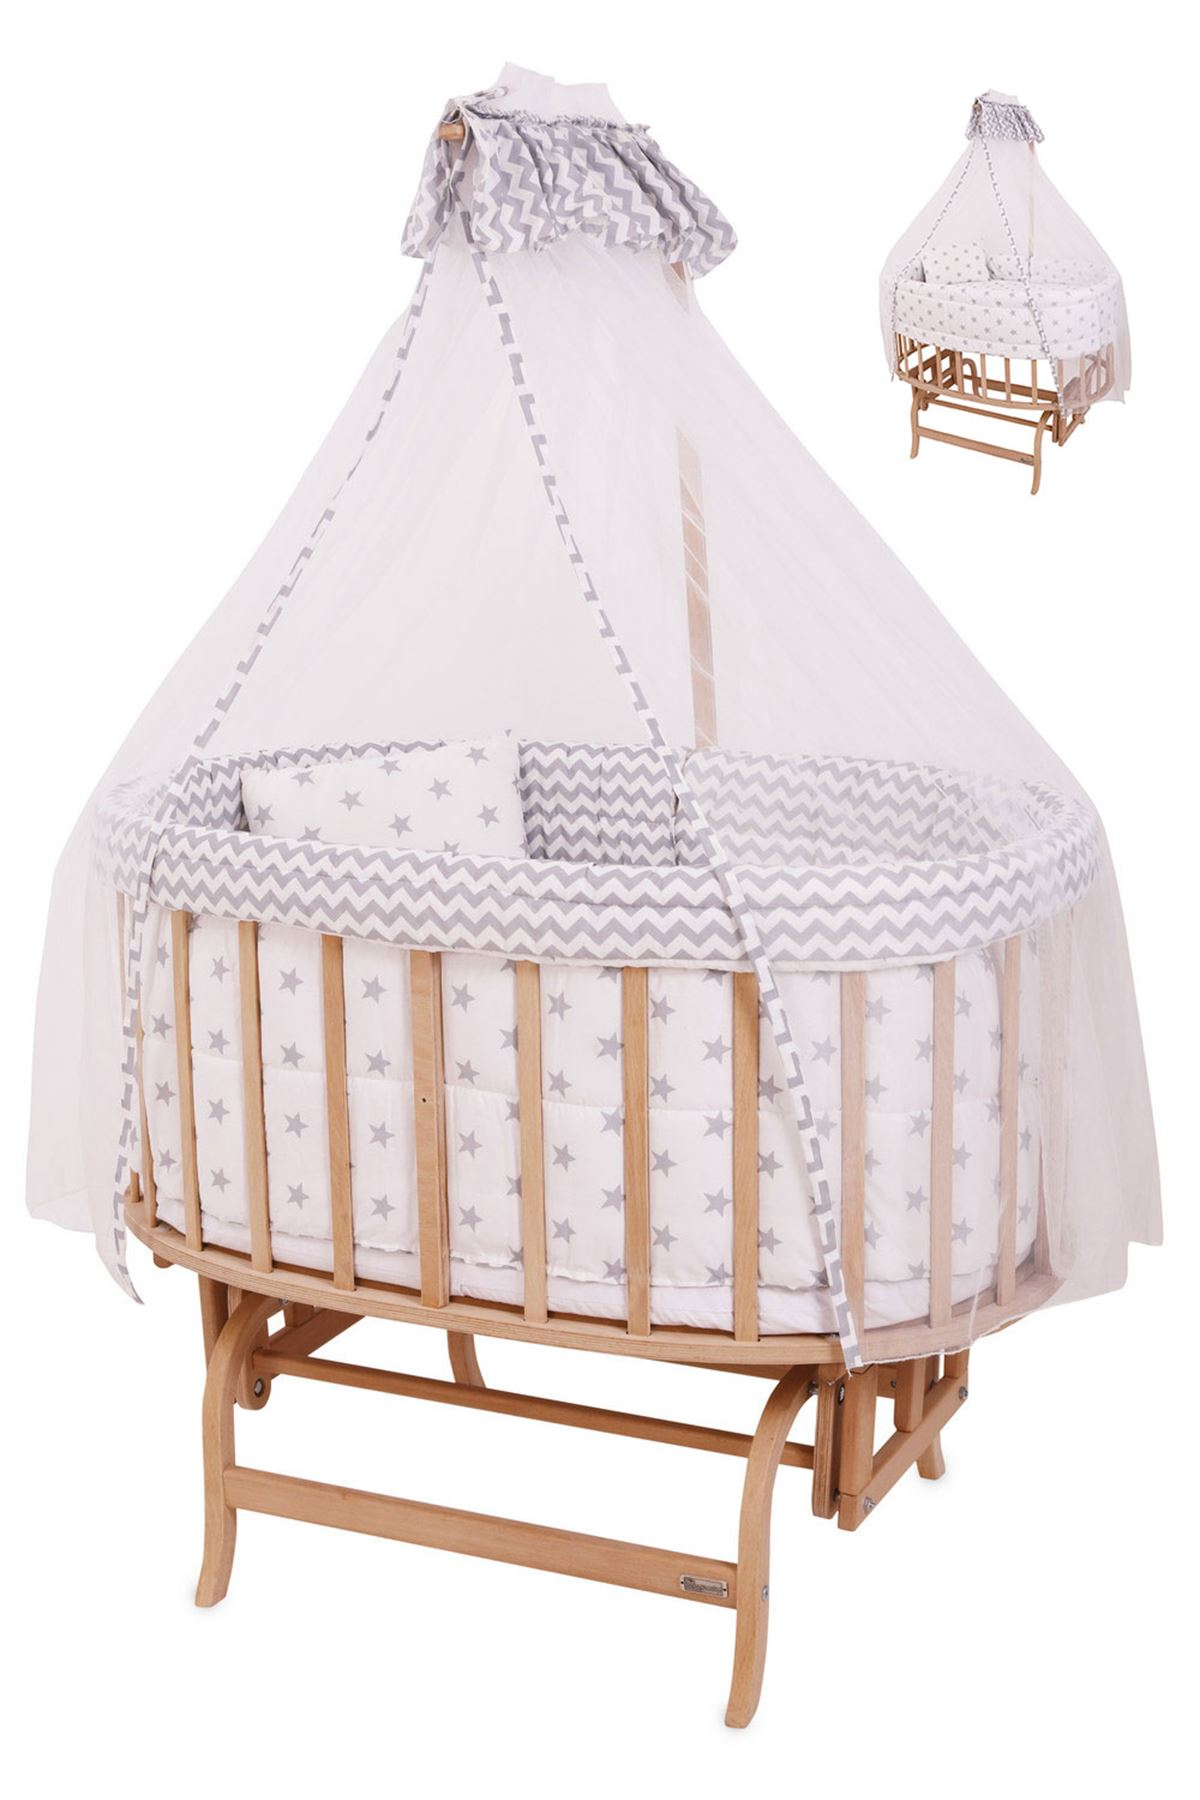 Wooden Baby Cot with Gray Star Sleeping Set